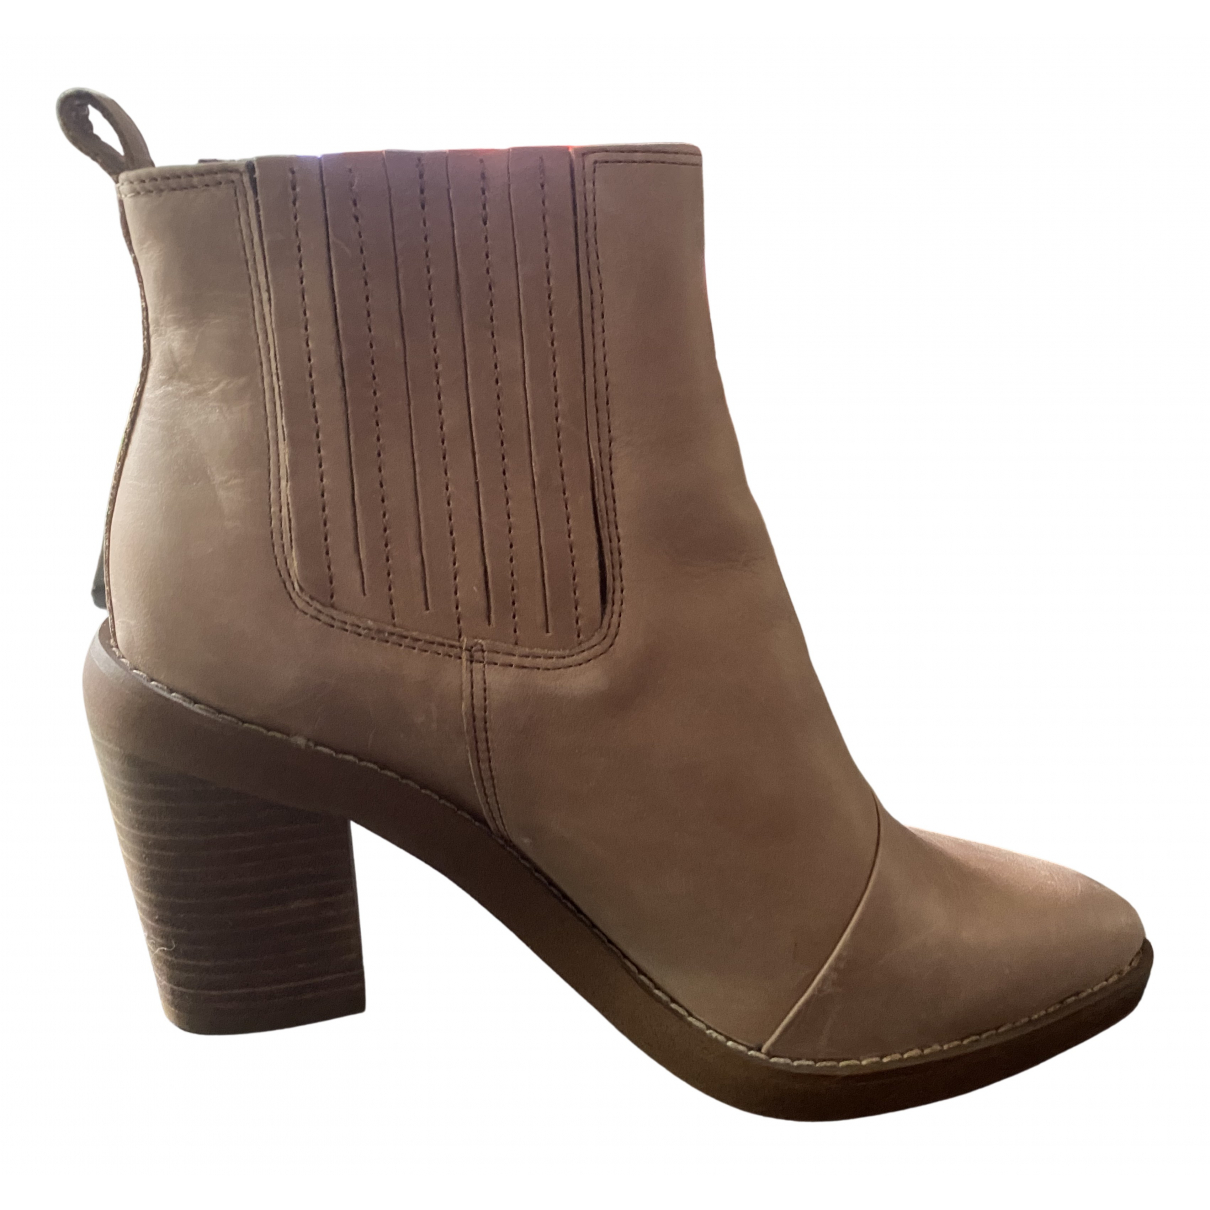 Tony Bianco N Camel Leather Boots for Women 39.5 EU